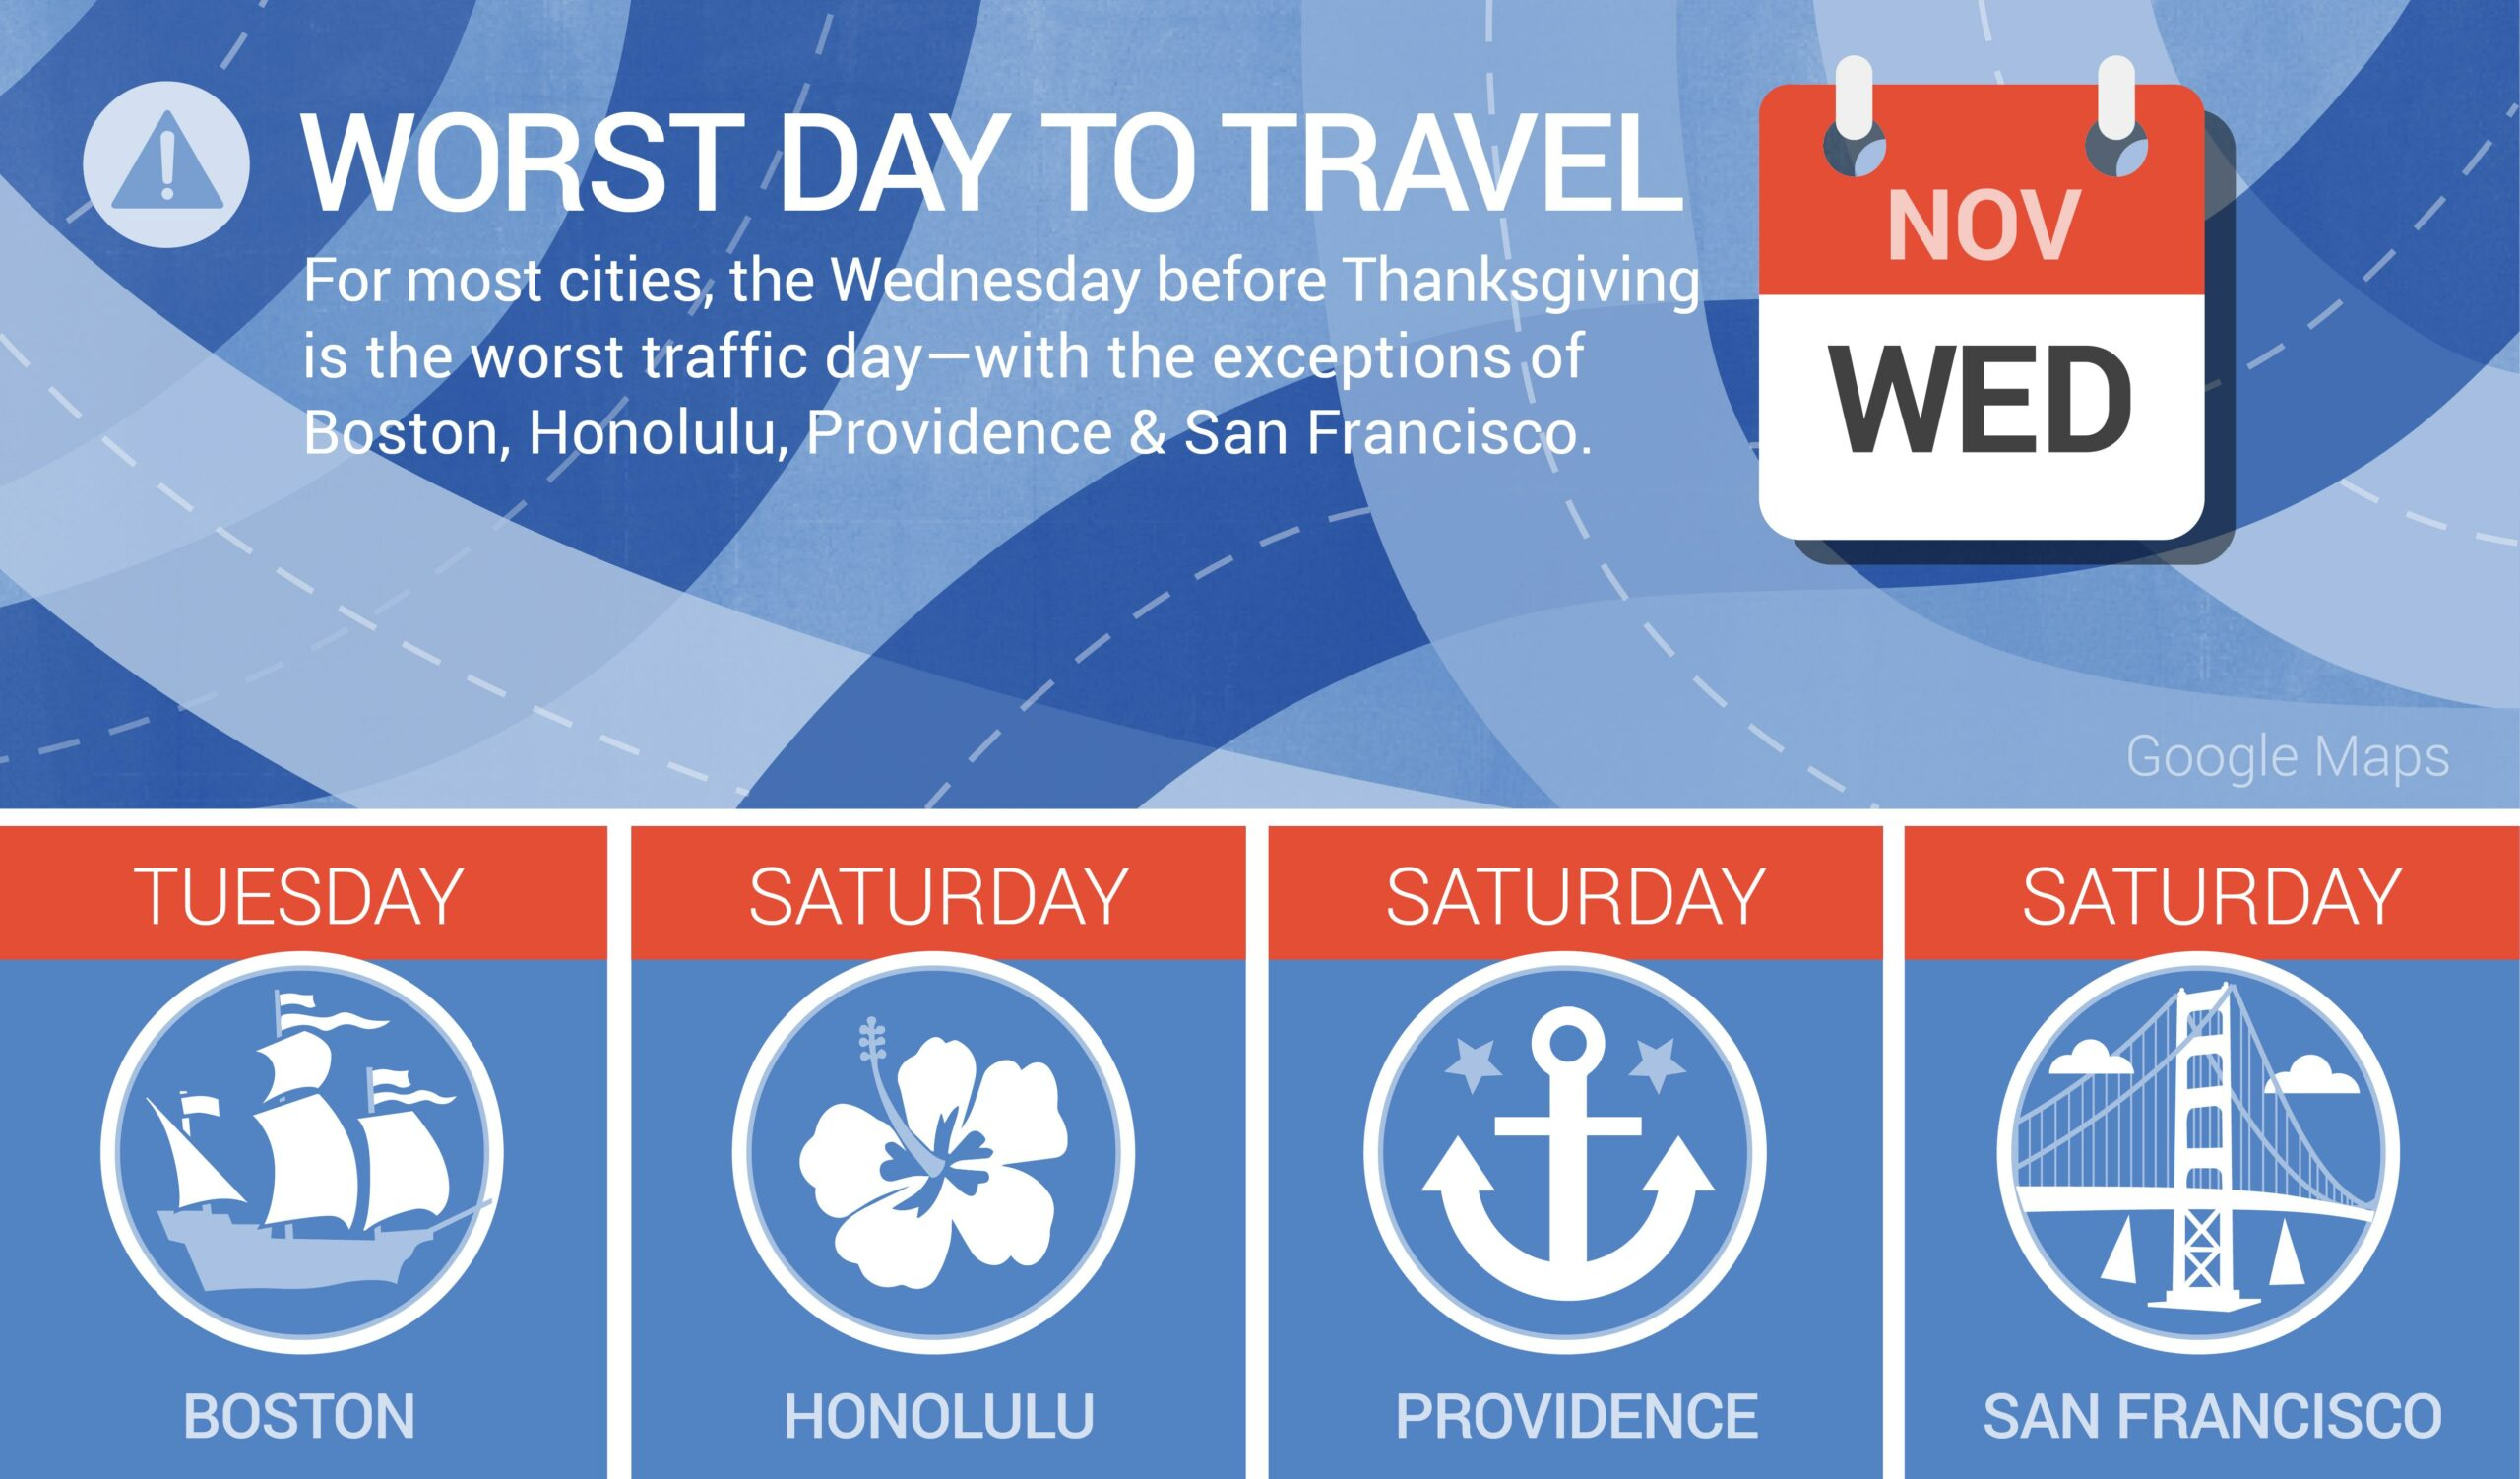 Google Determines Best Travel Times For Thanksgiving Week